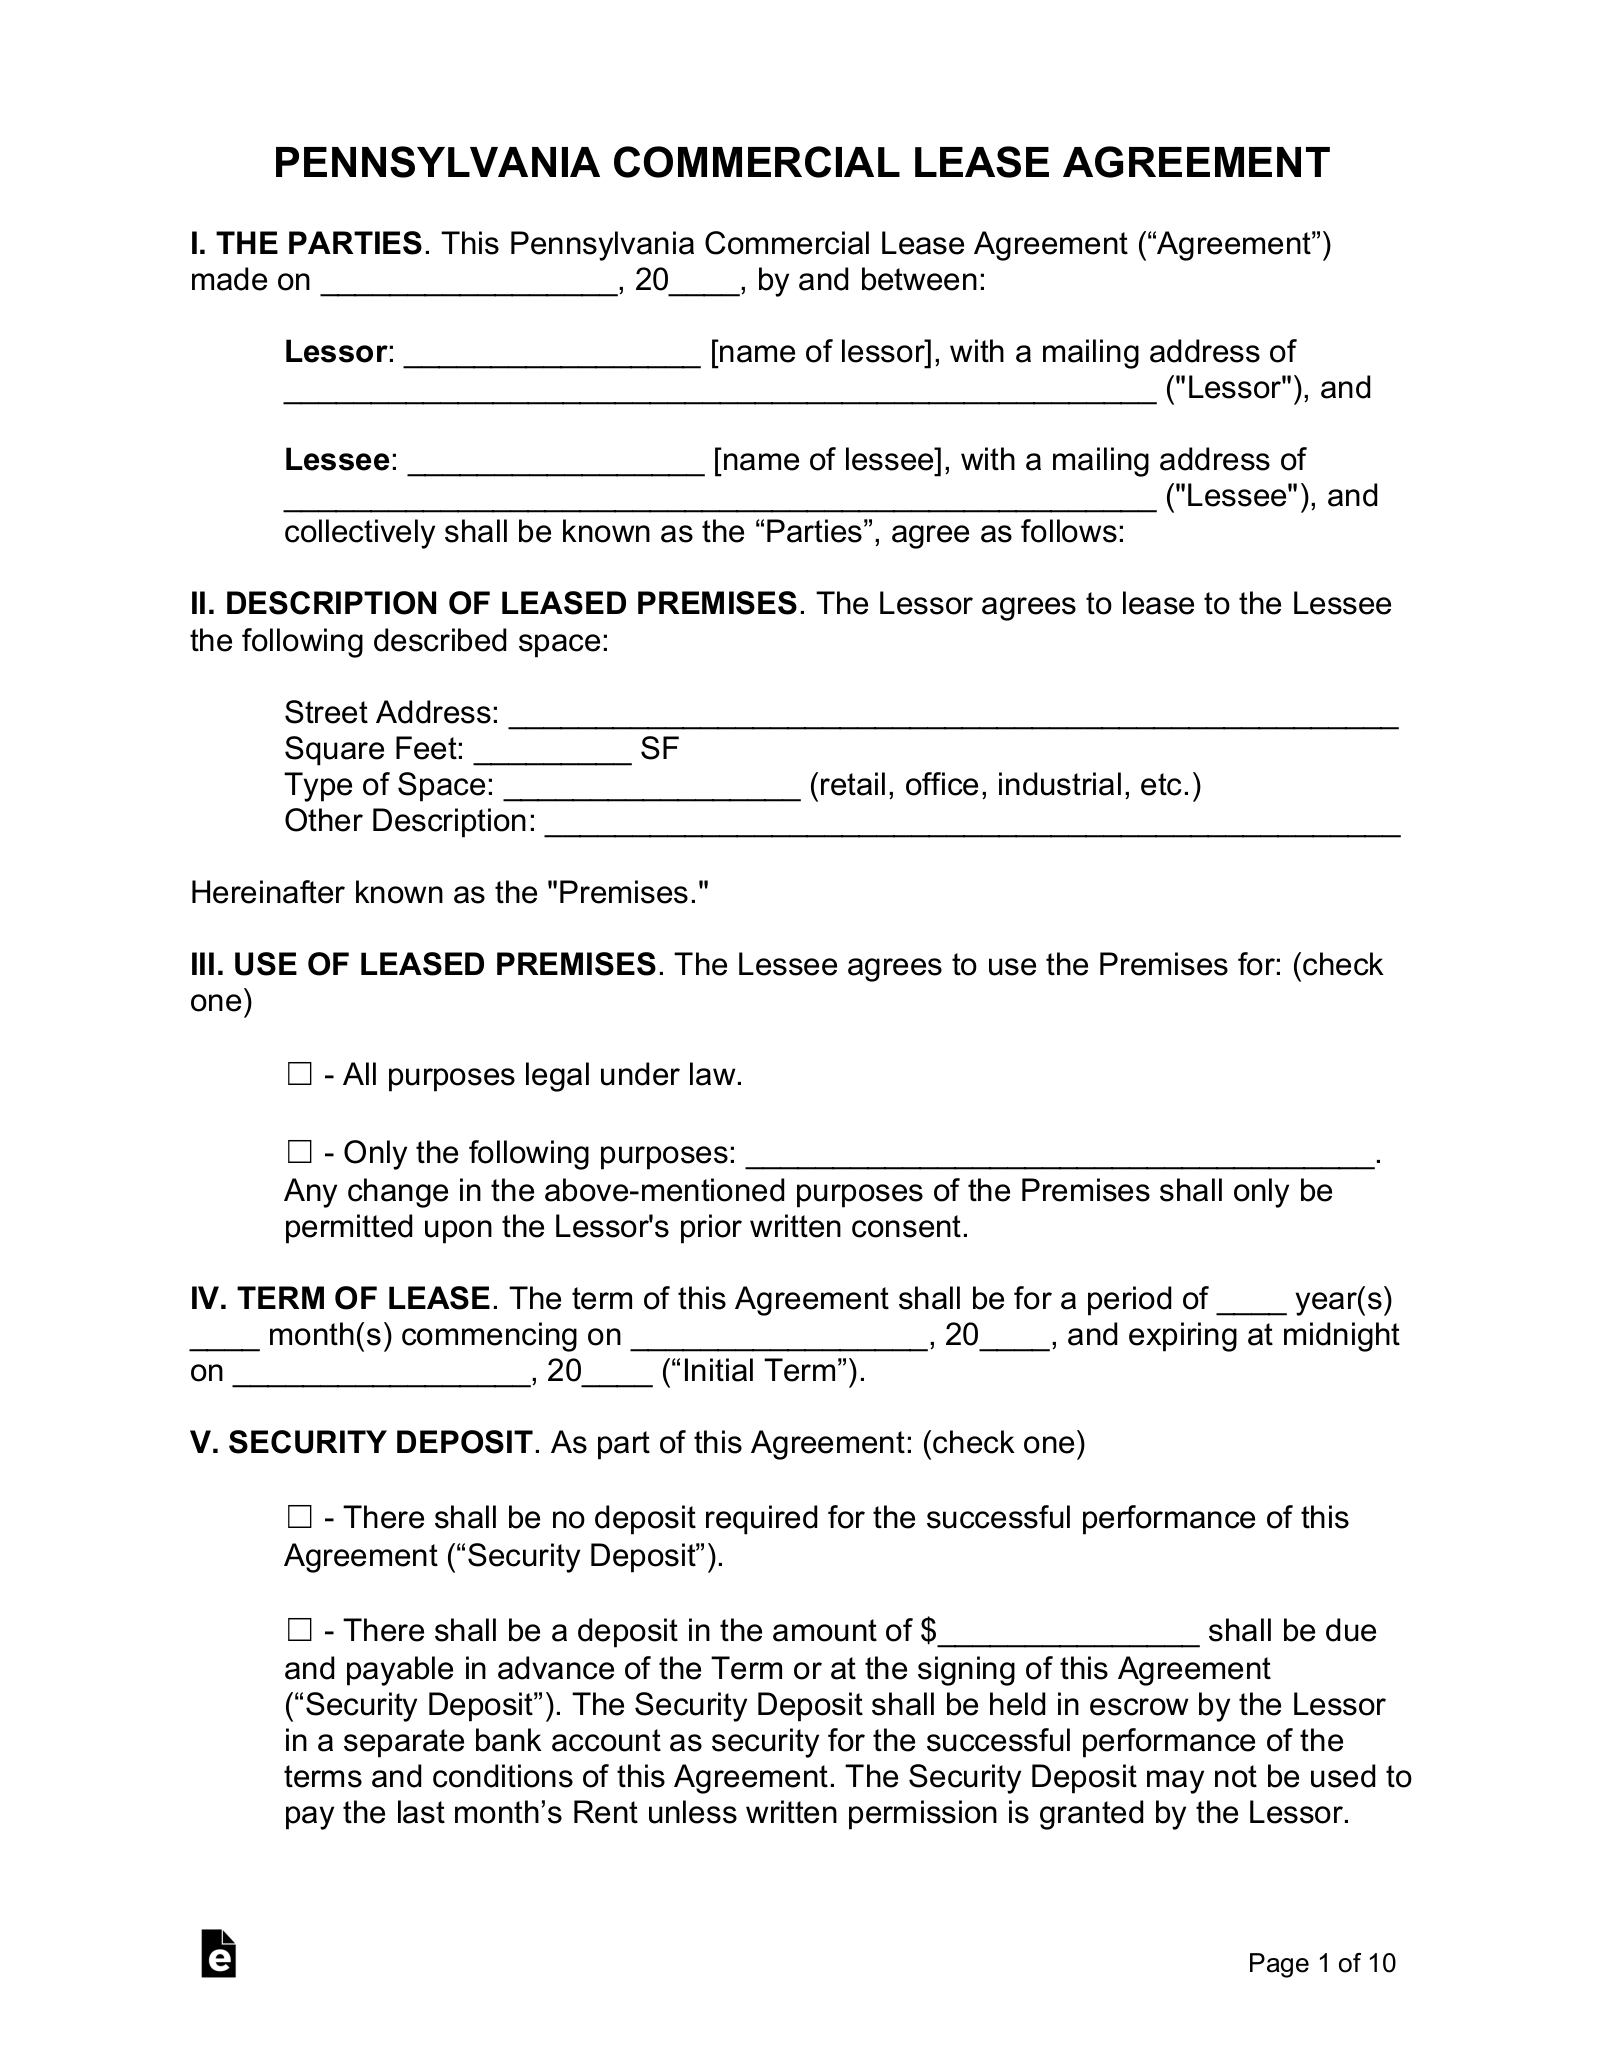 Free Pennsylvania Commercial Lease Agreement Template Pdf